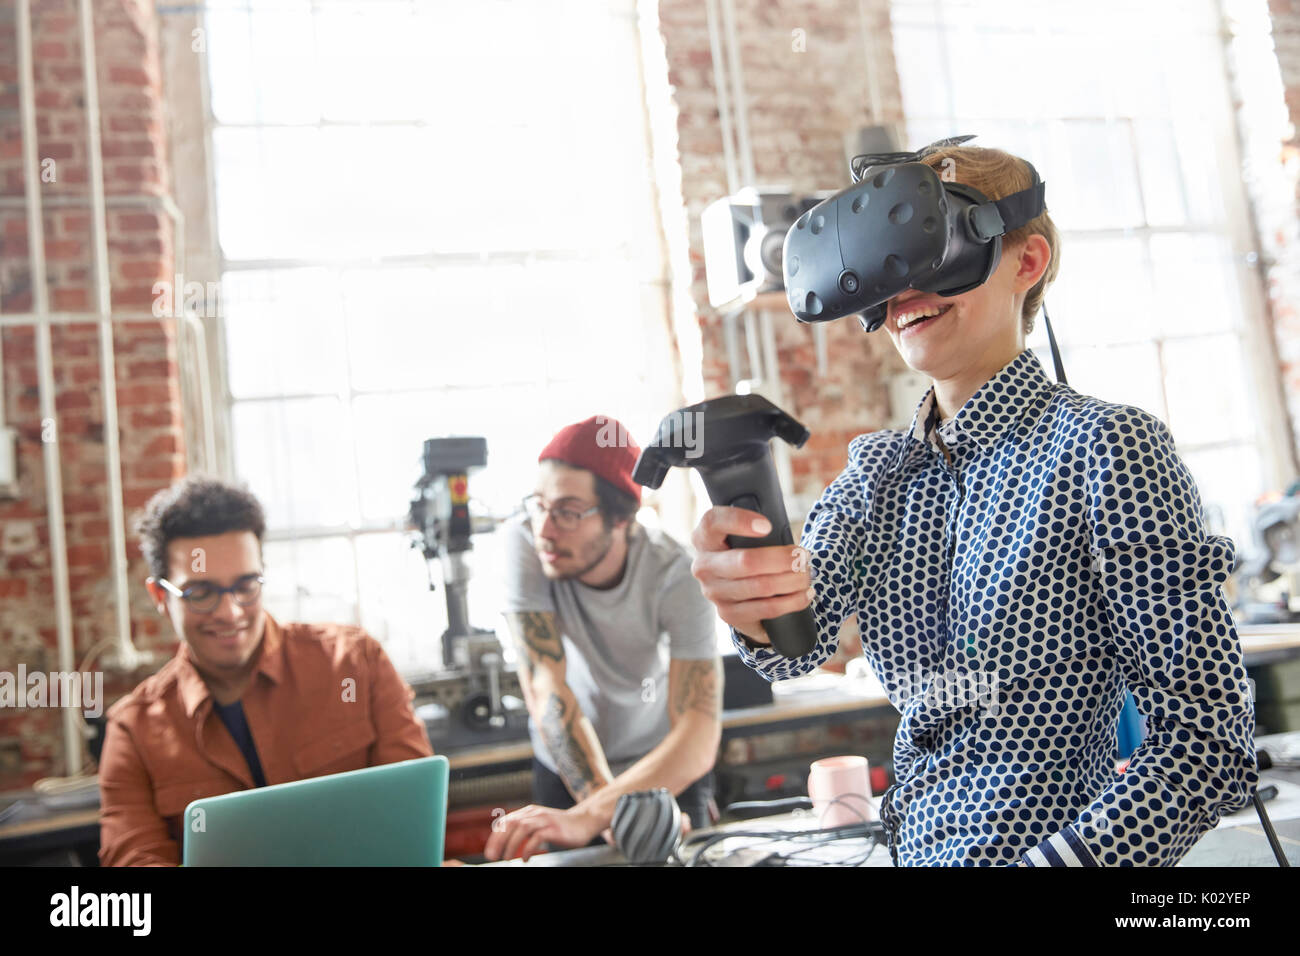 Female designer texting virtual reality simulator glasses and using joystick in workshop - Stock Image